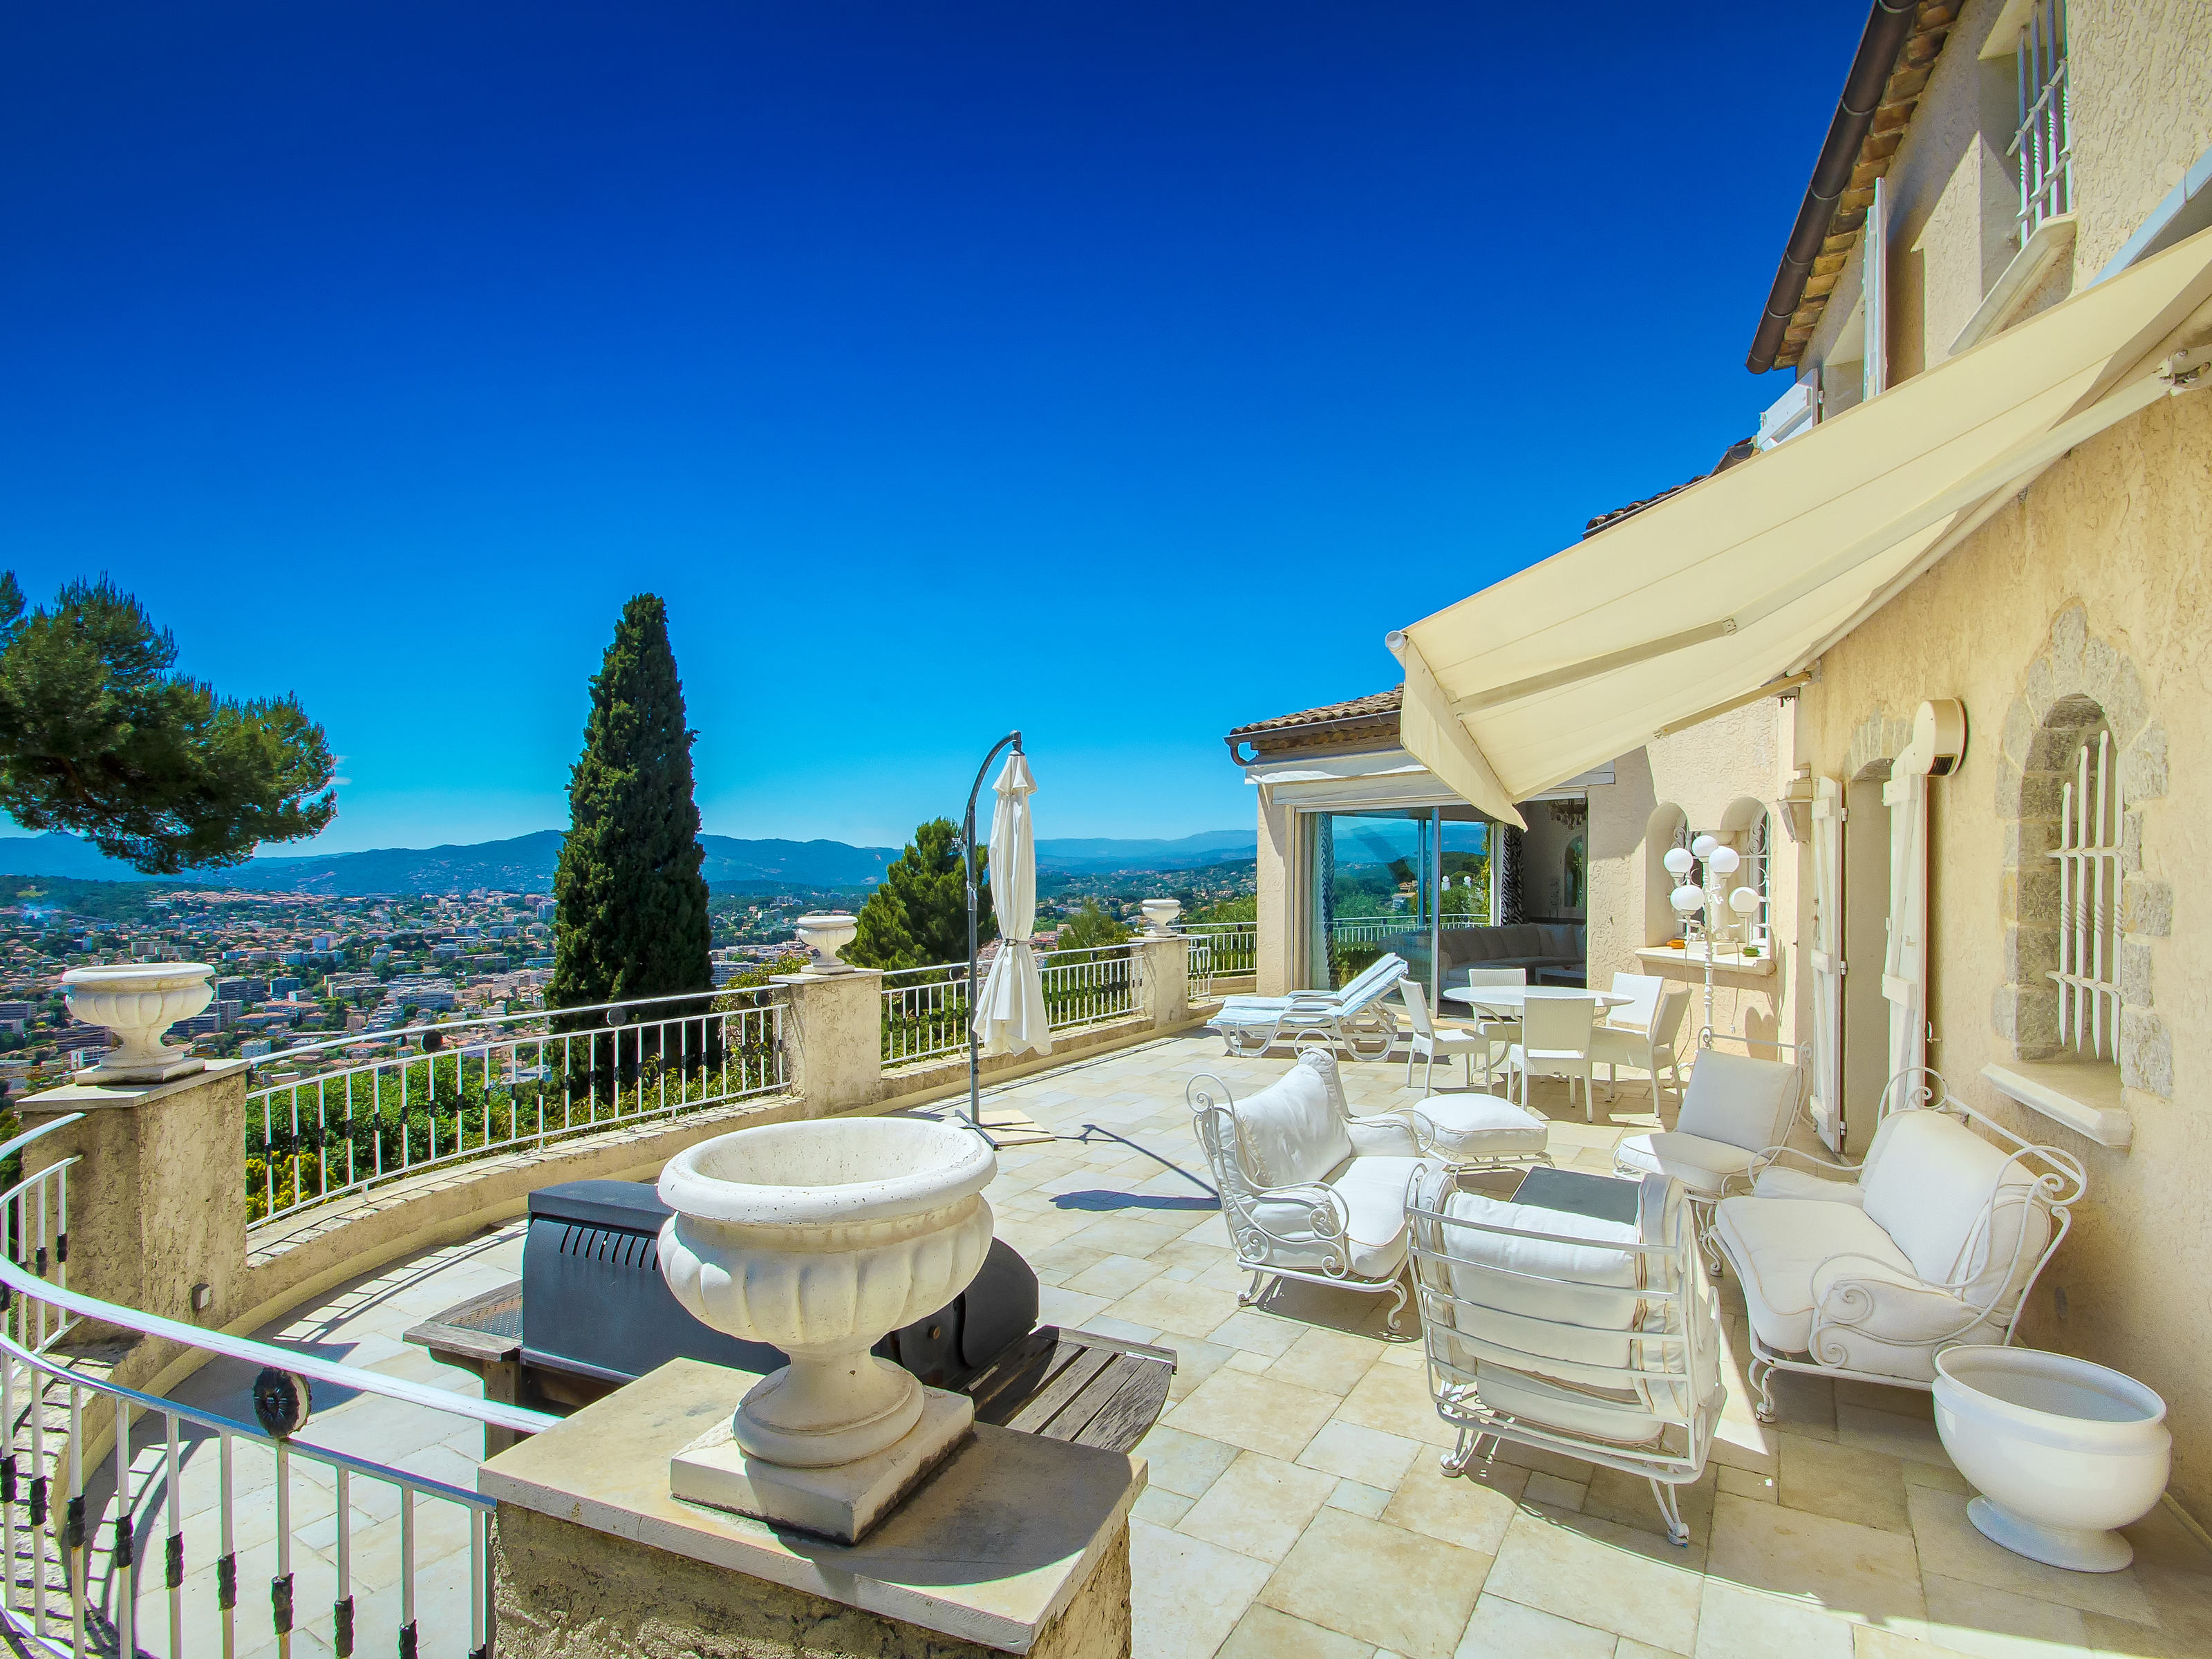 Single Family Home for Sale at Le Cannet, residential area, Panoramic sea view Cannes, Provence-Alpes-Cote D'Azur France